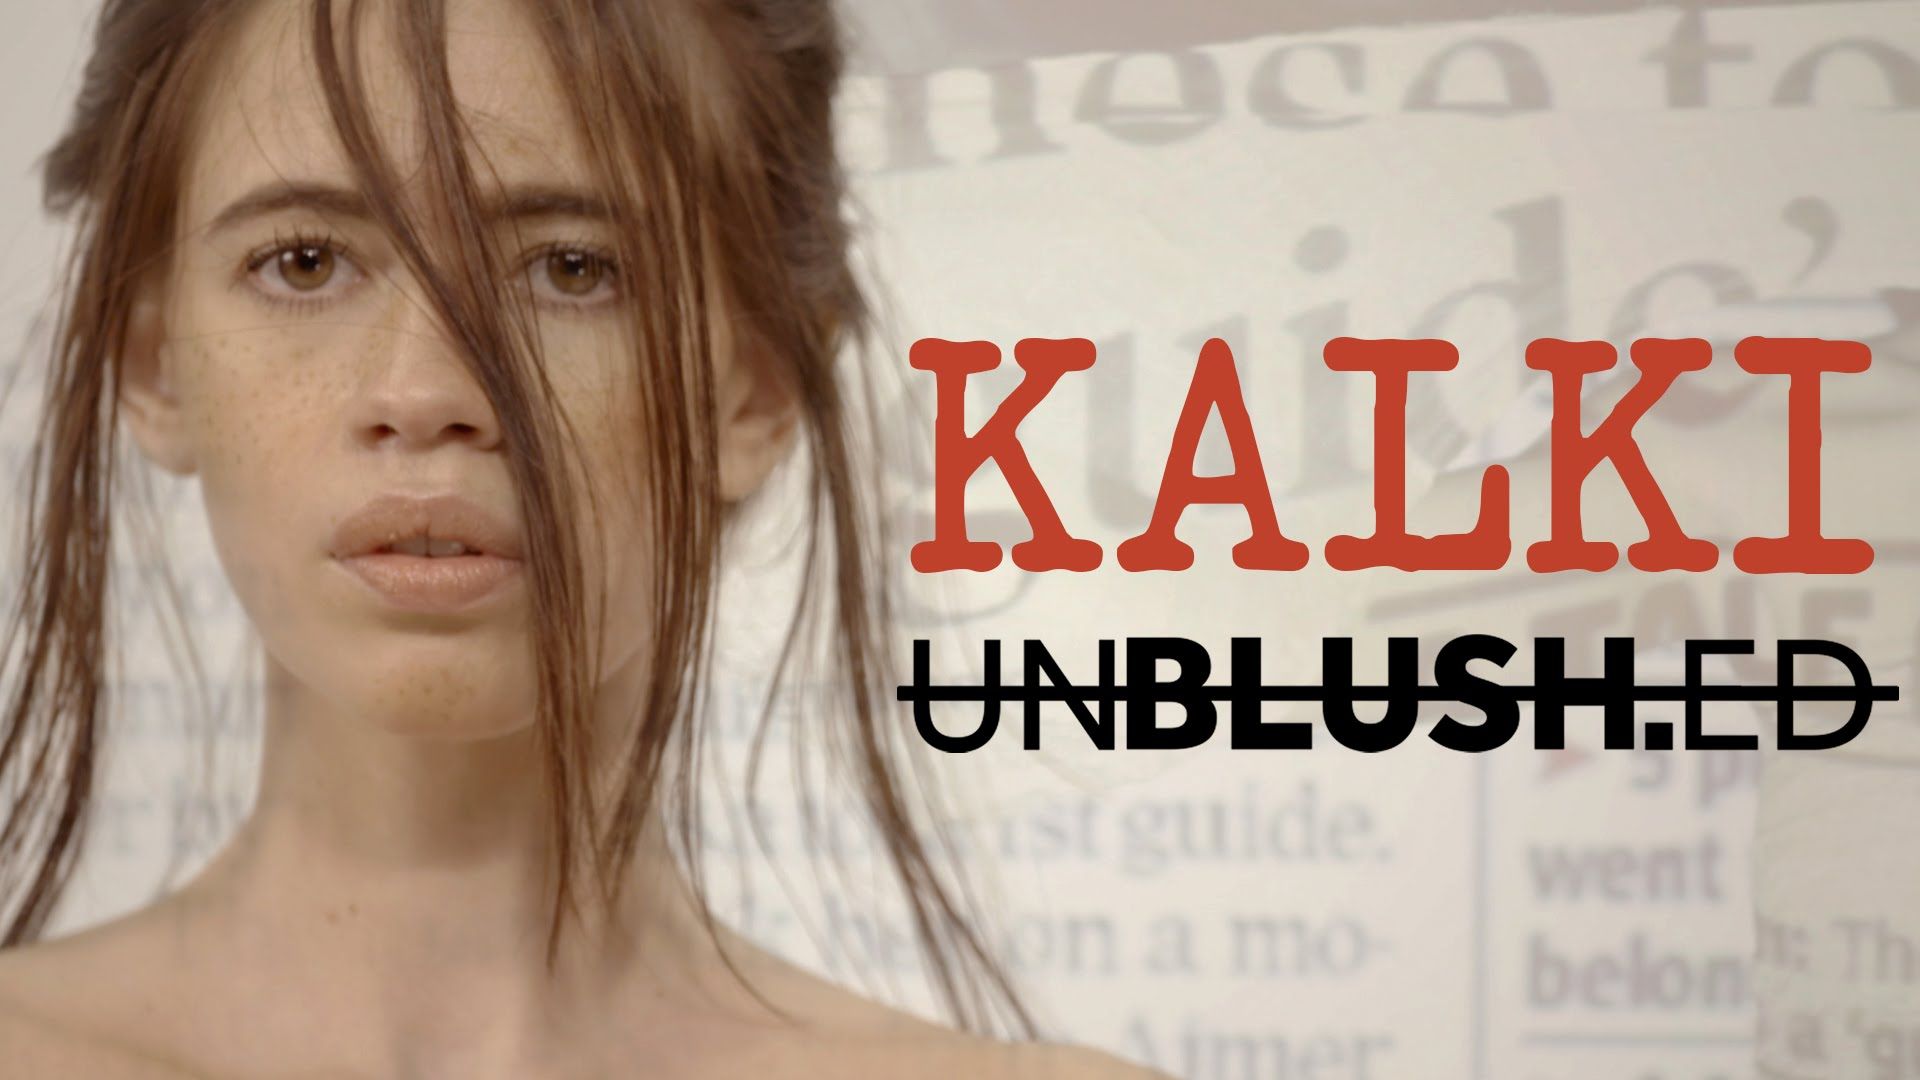 Actress Kalki Koechlin Stuns Everyone With Her Recent Video! - rhythm & poetry